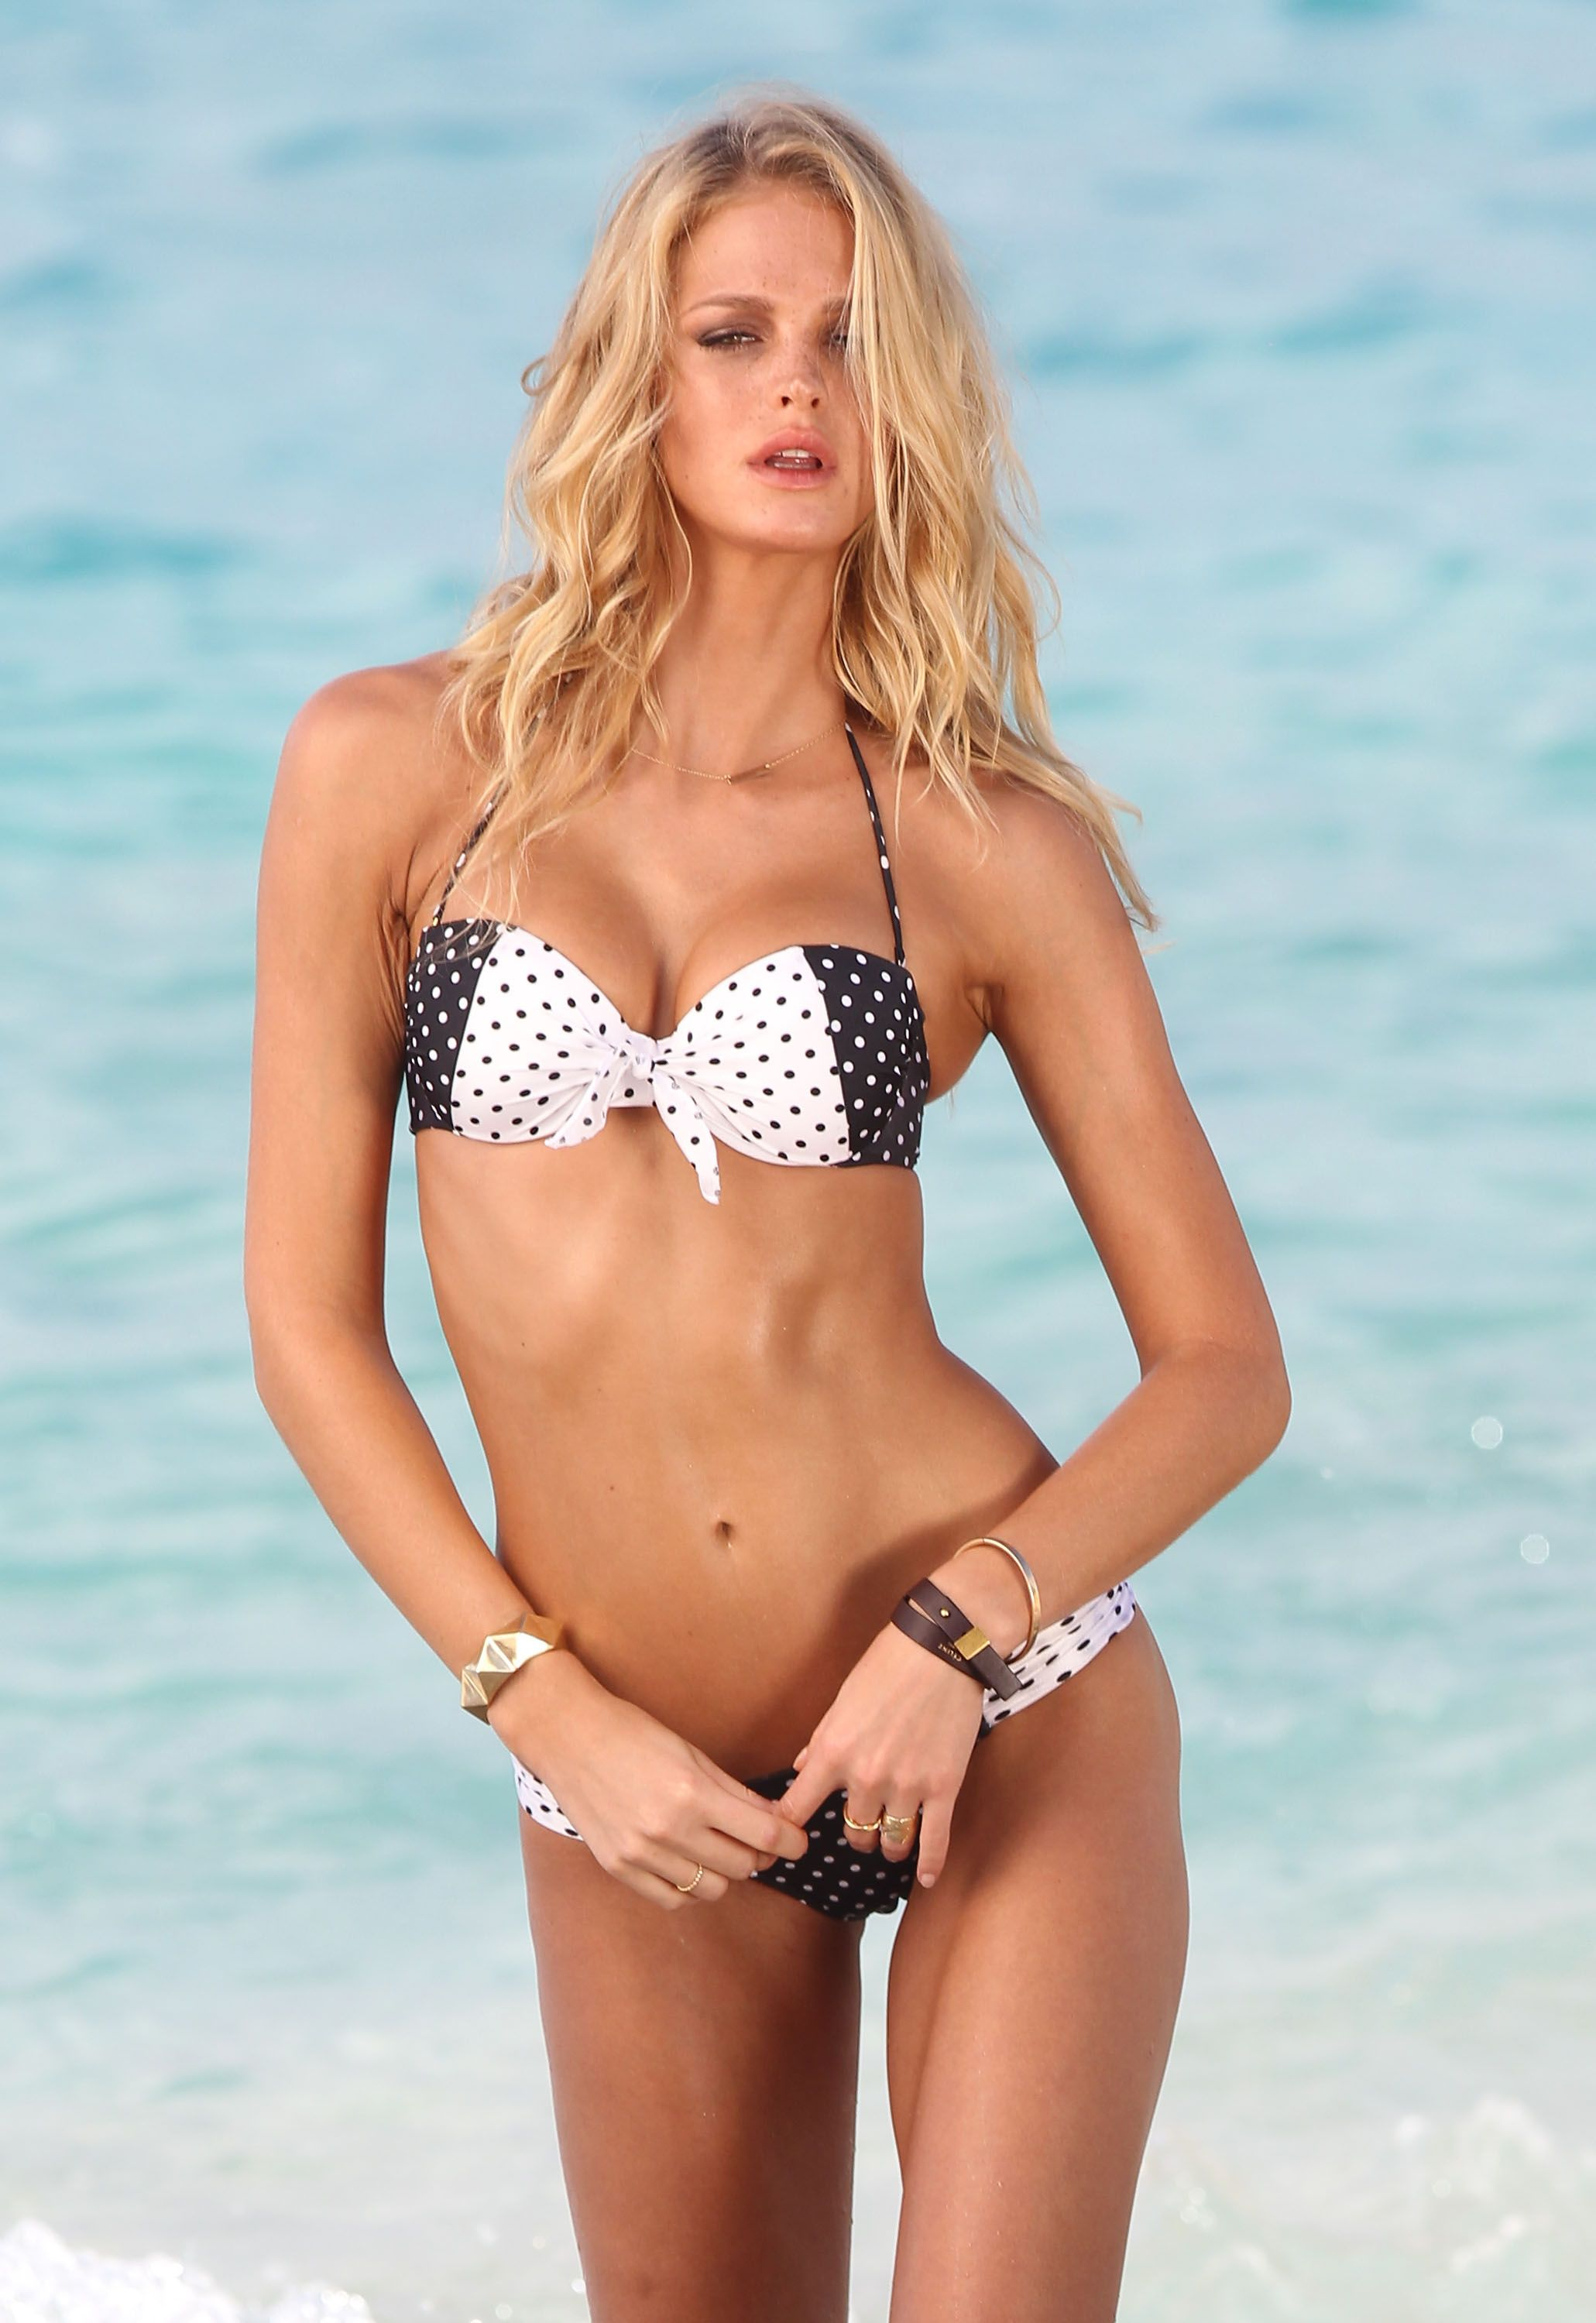 0cc7f0b4c51 Bikini-Clad Erin Heatherton Works Her Sexiest Poses For VS | Sexy ...